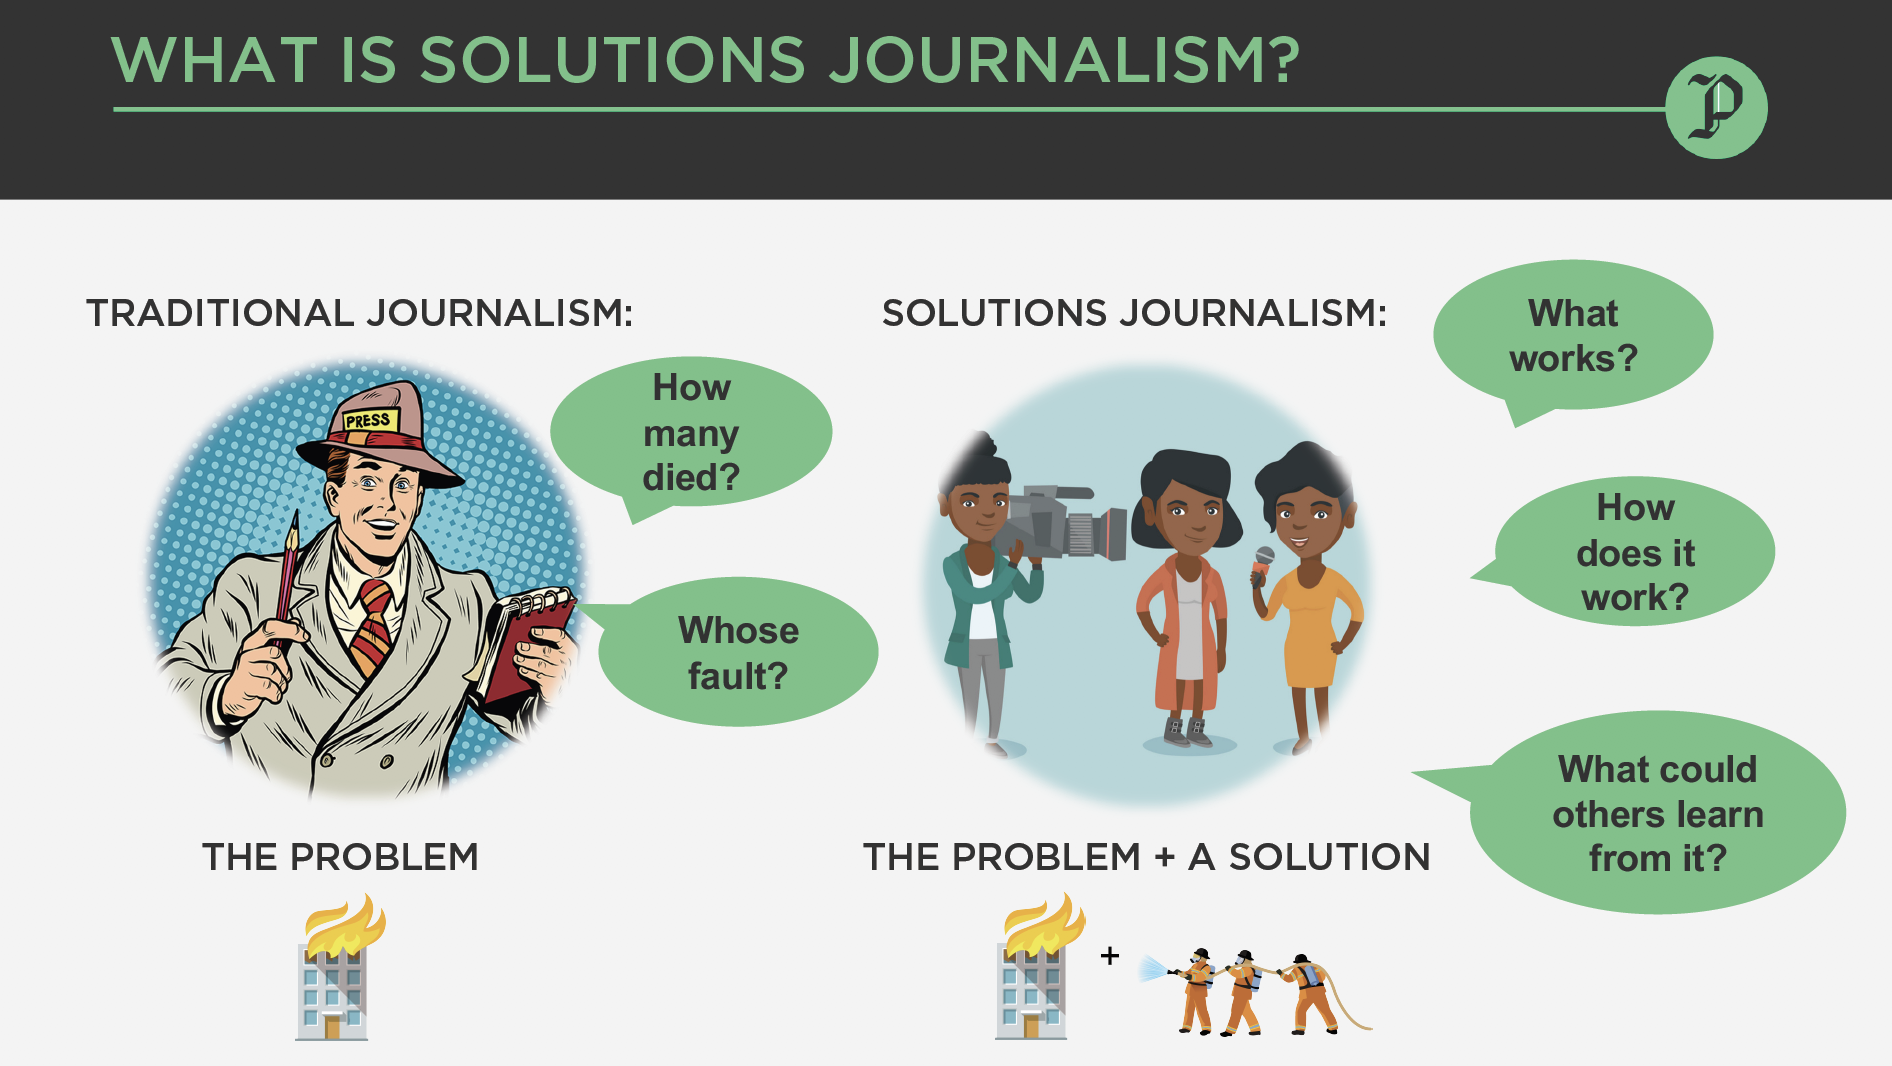 What is solutions journalism